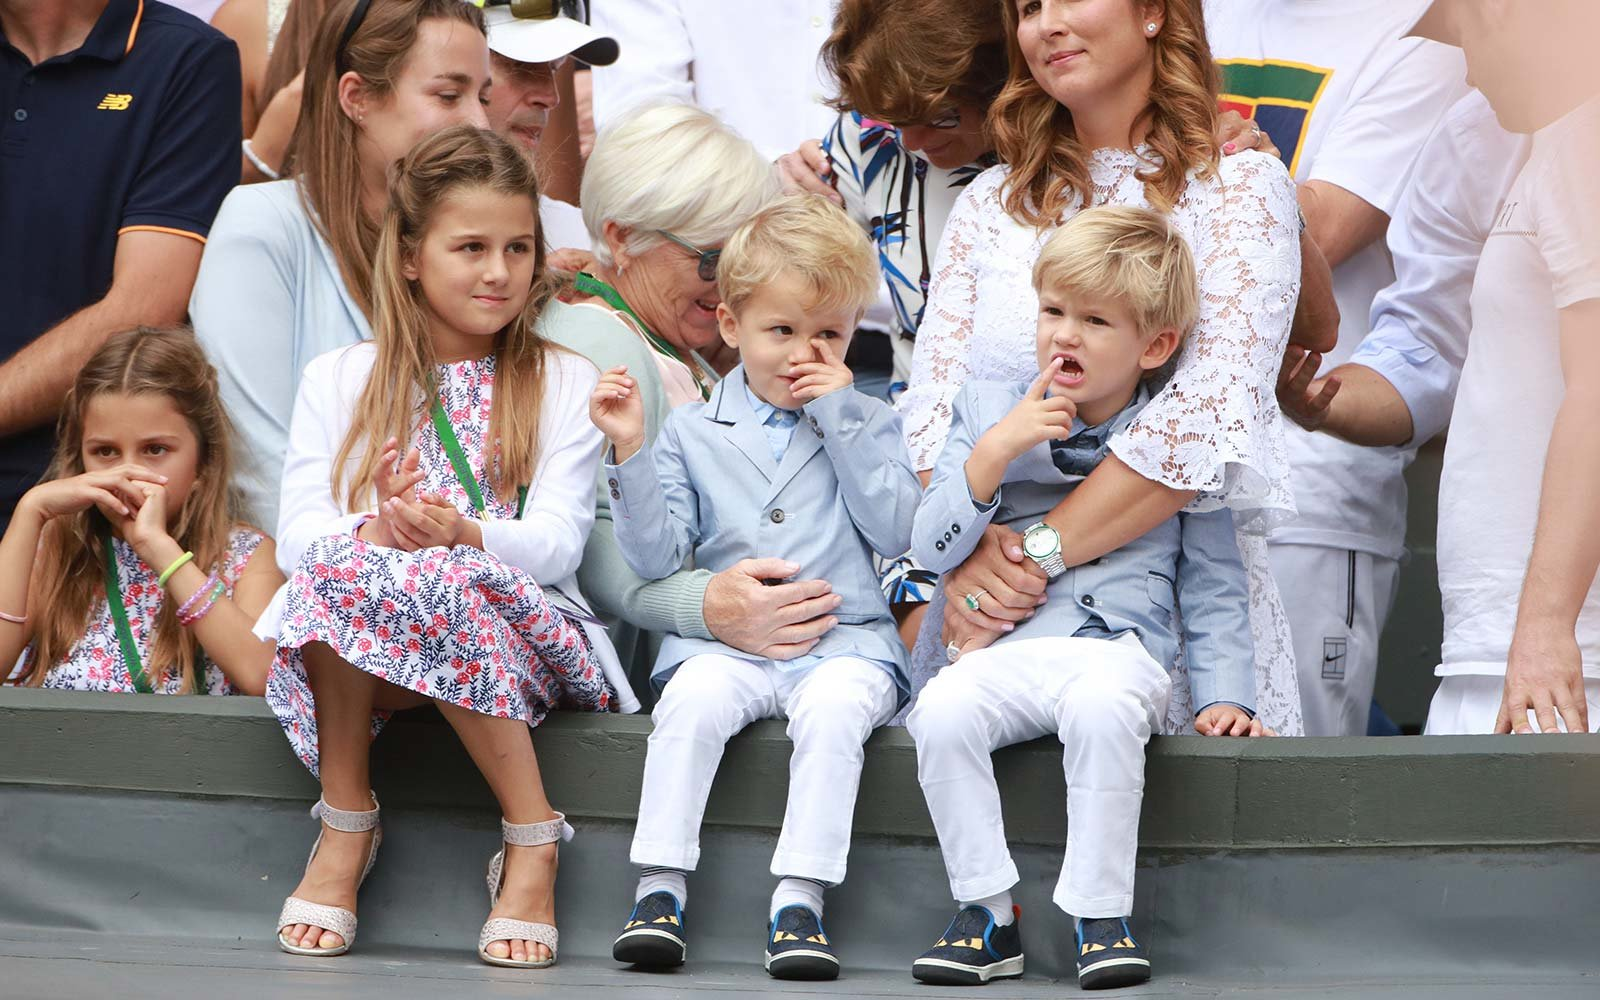 roger wife mirka federer and their four children identical twin daughters myla and charlene